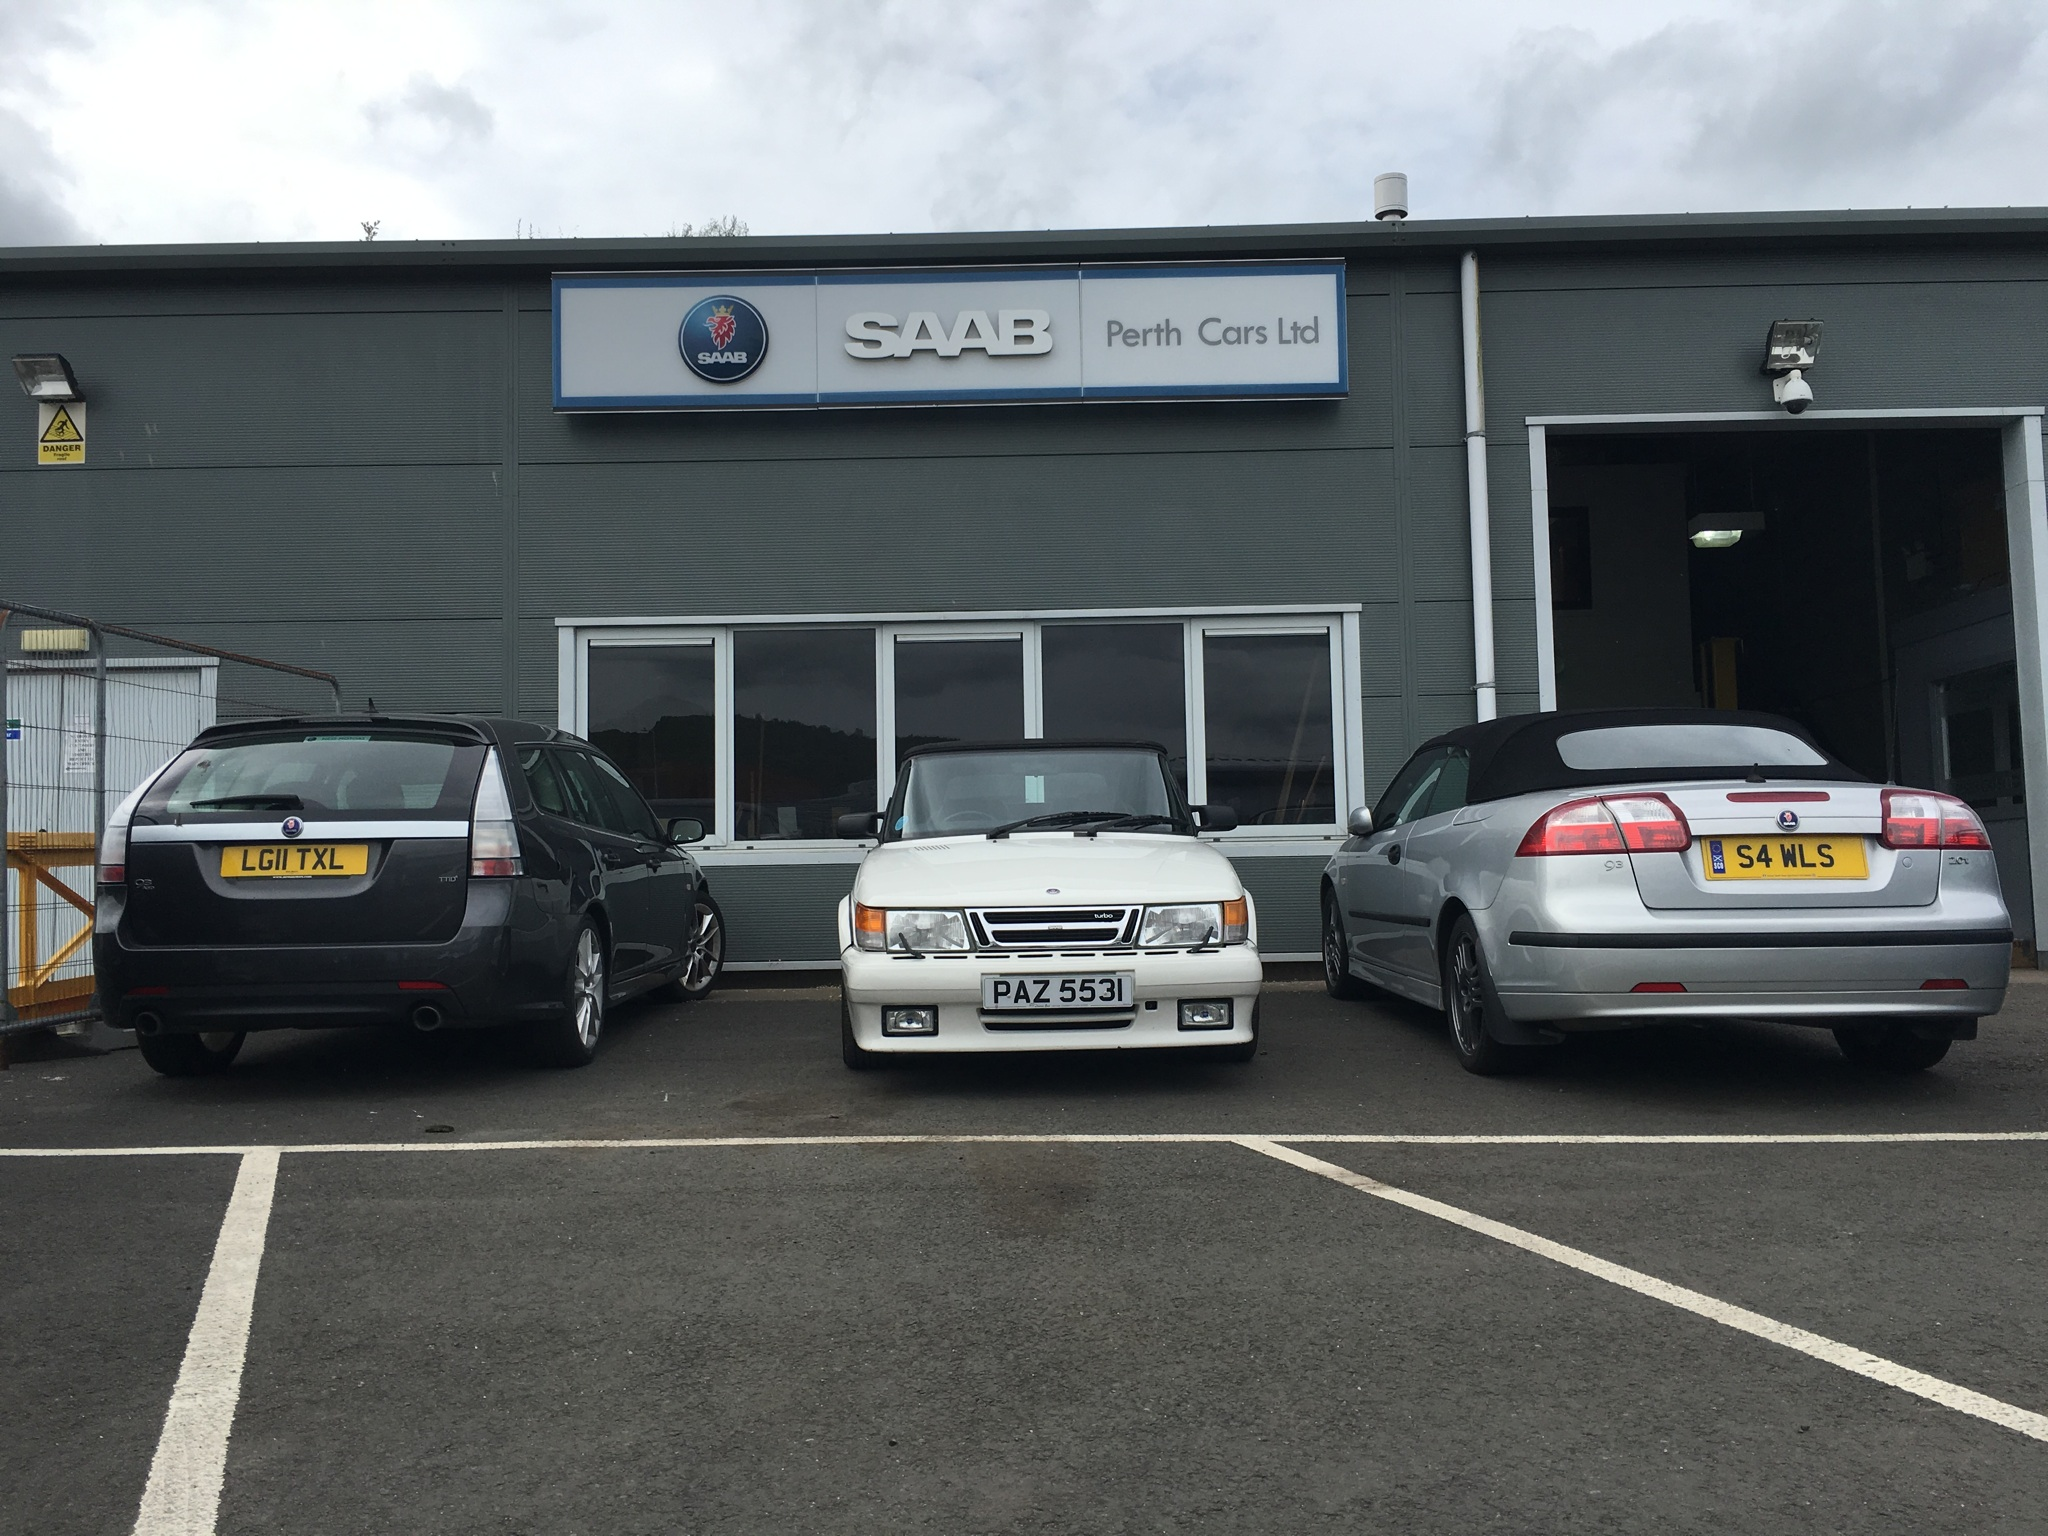 Car for Sale Scotland Beautiful Home Page